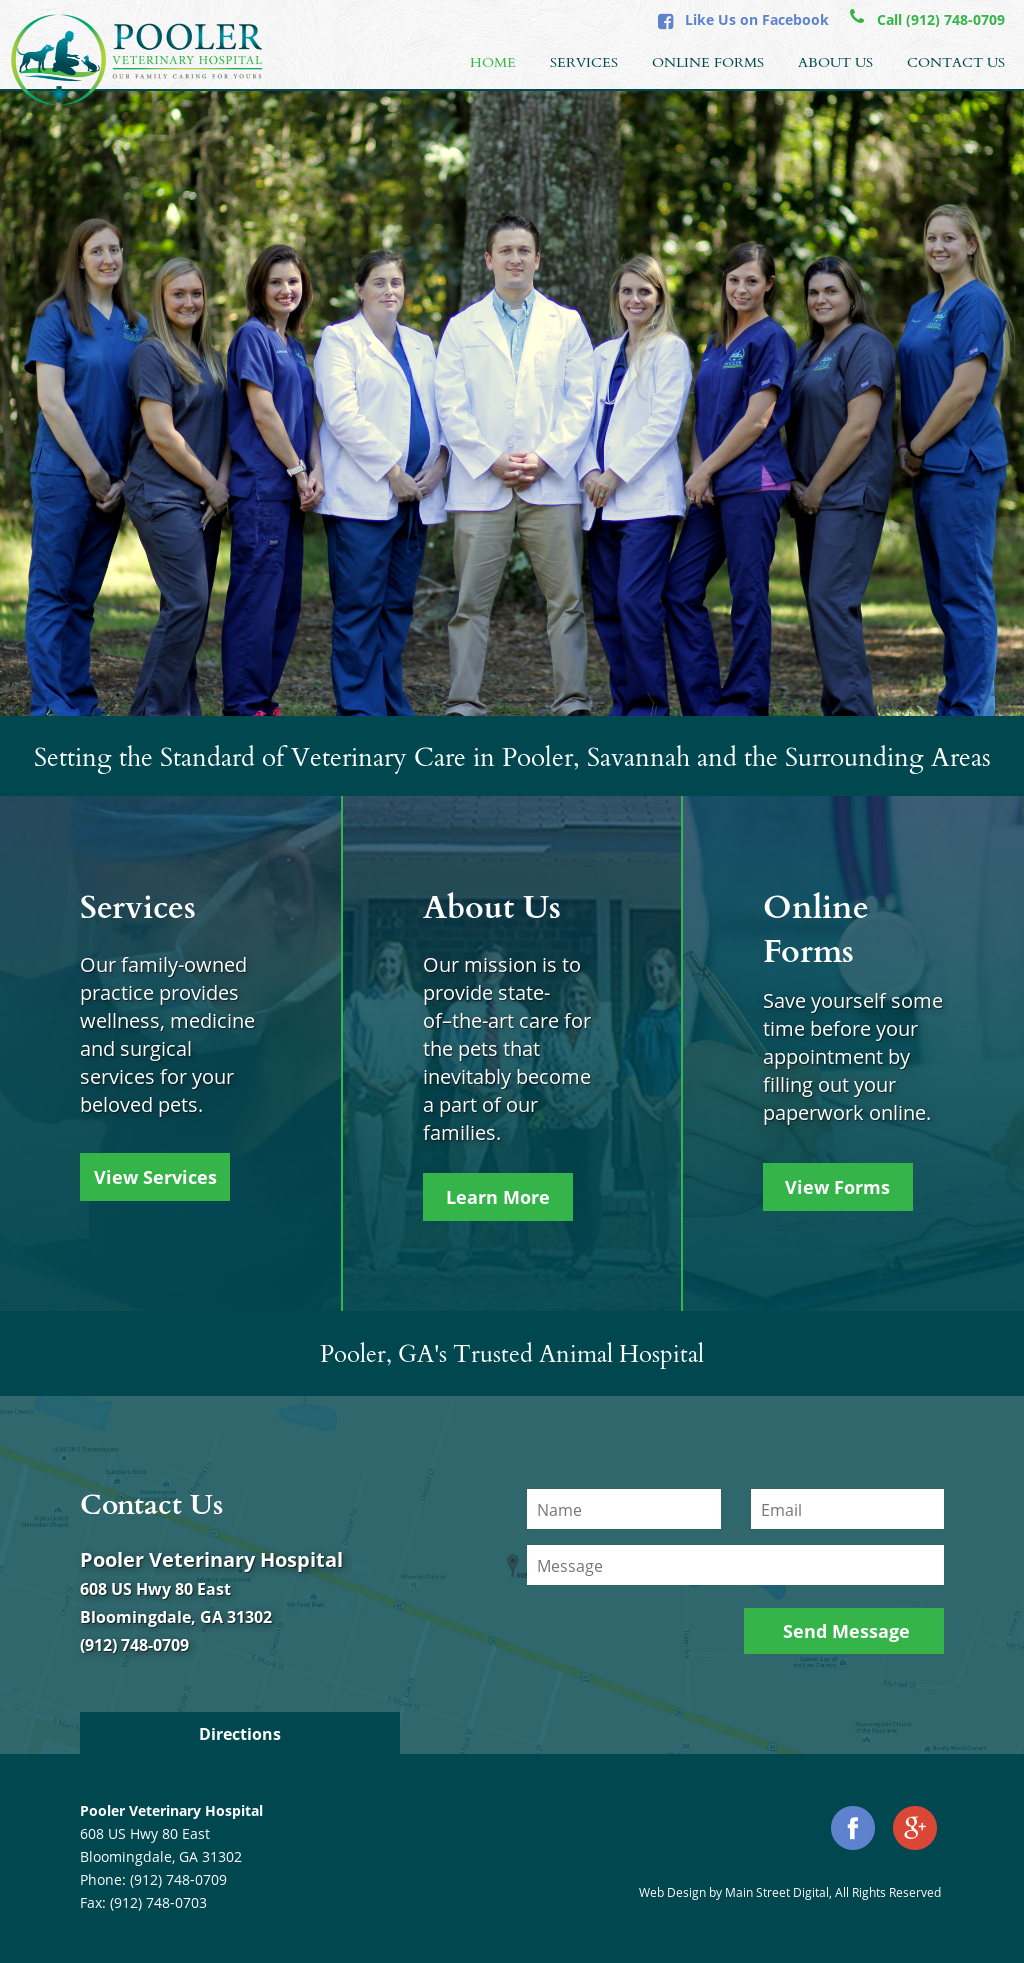 Pooler Veterinary Hospital Competitors, Revenue and